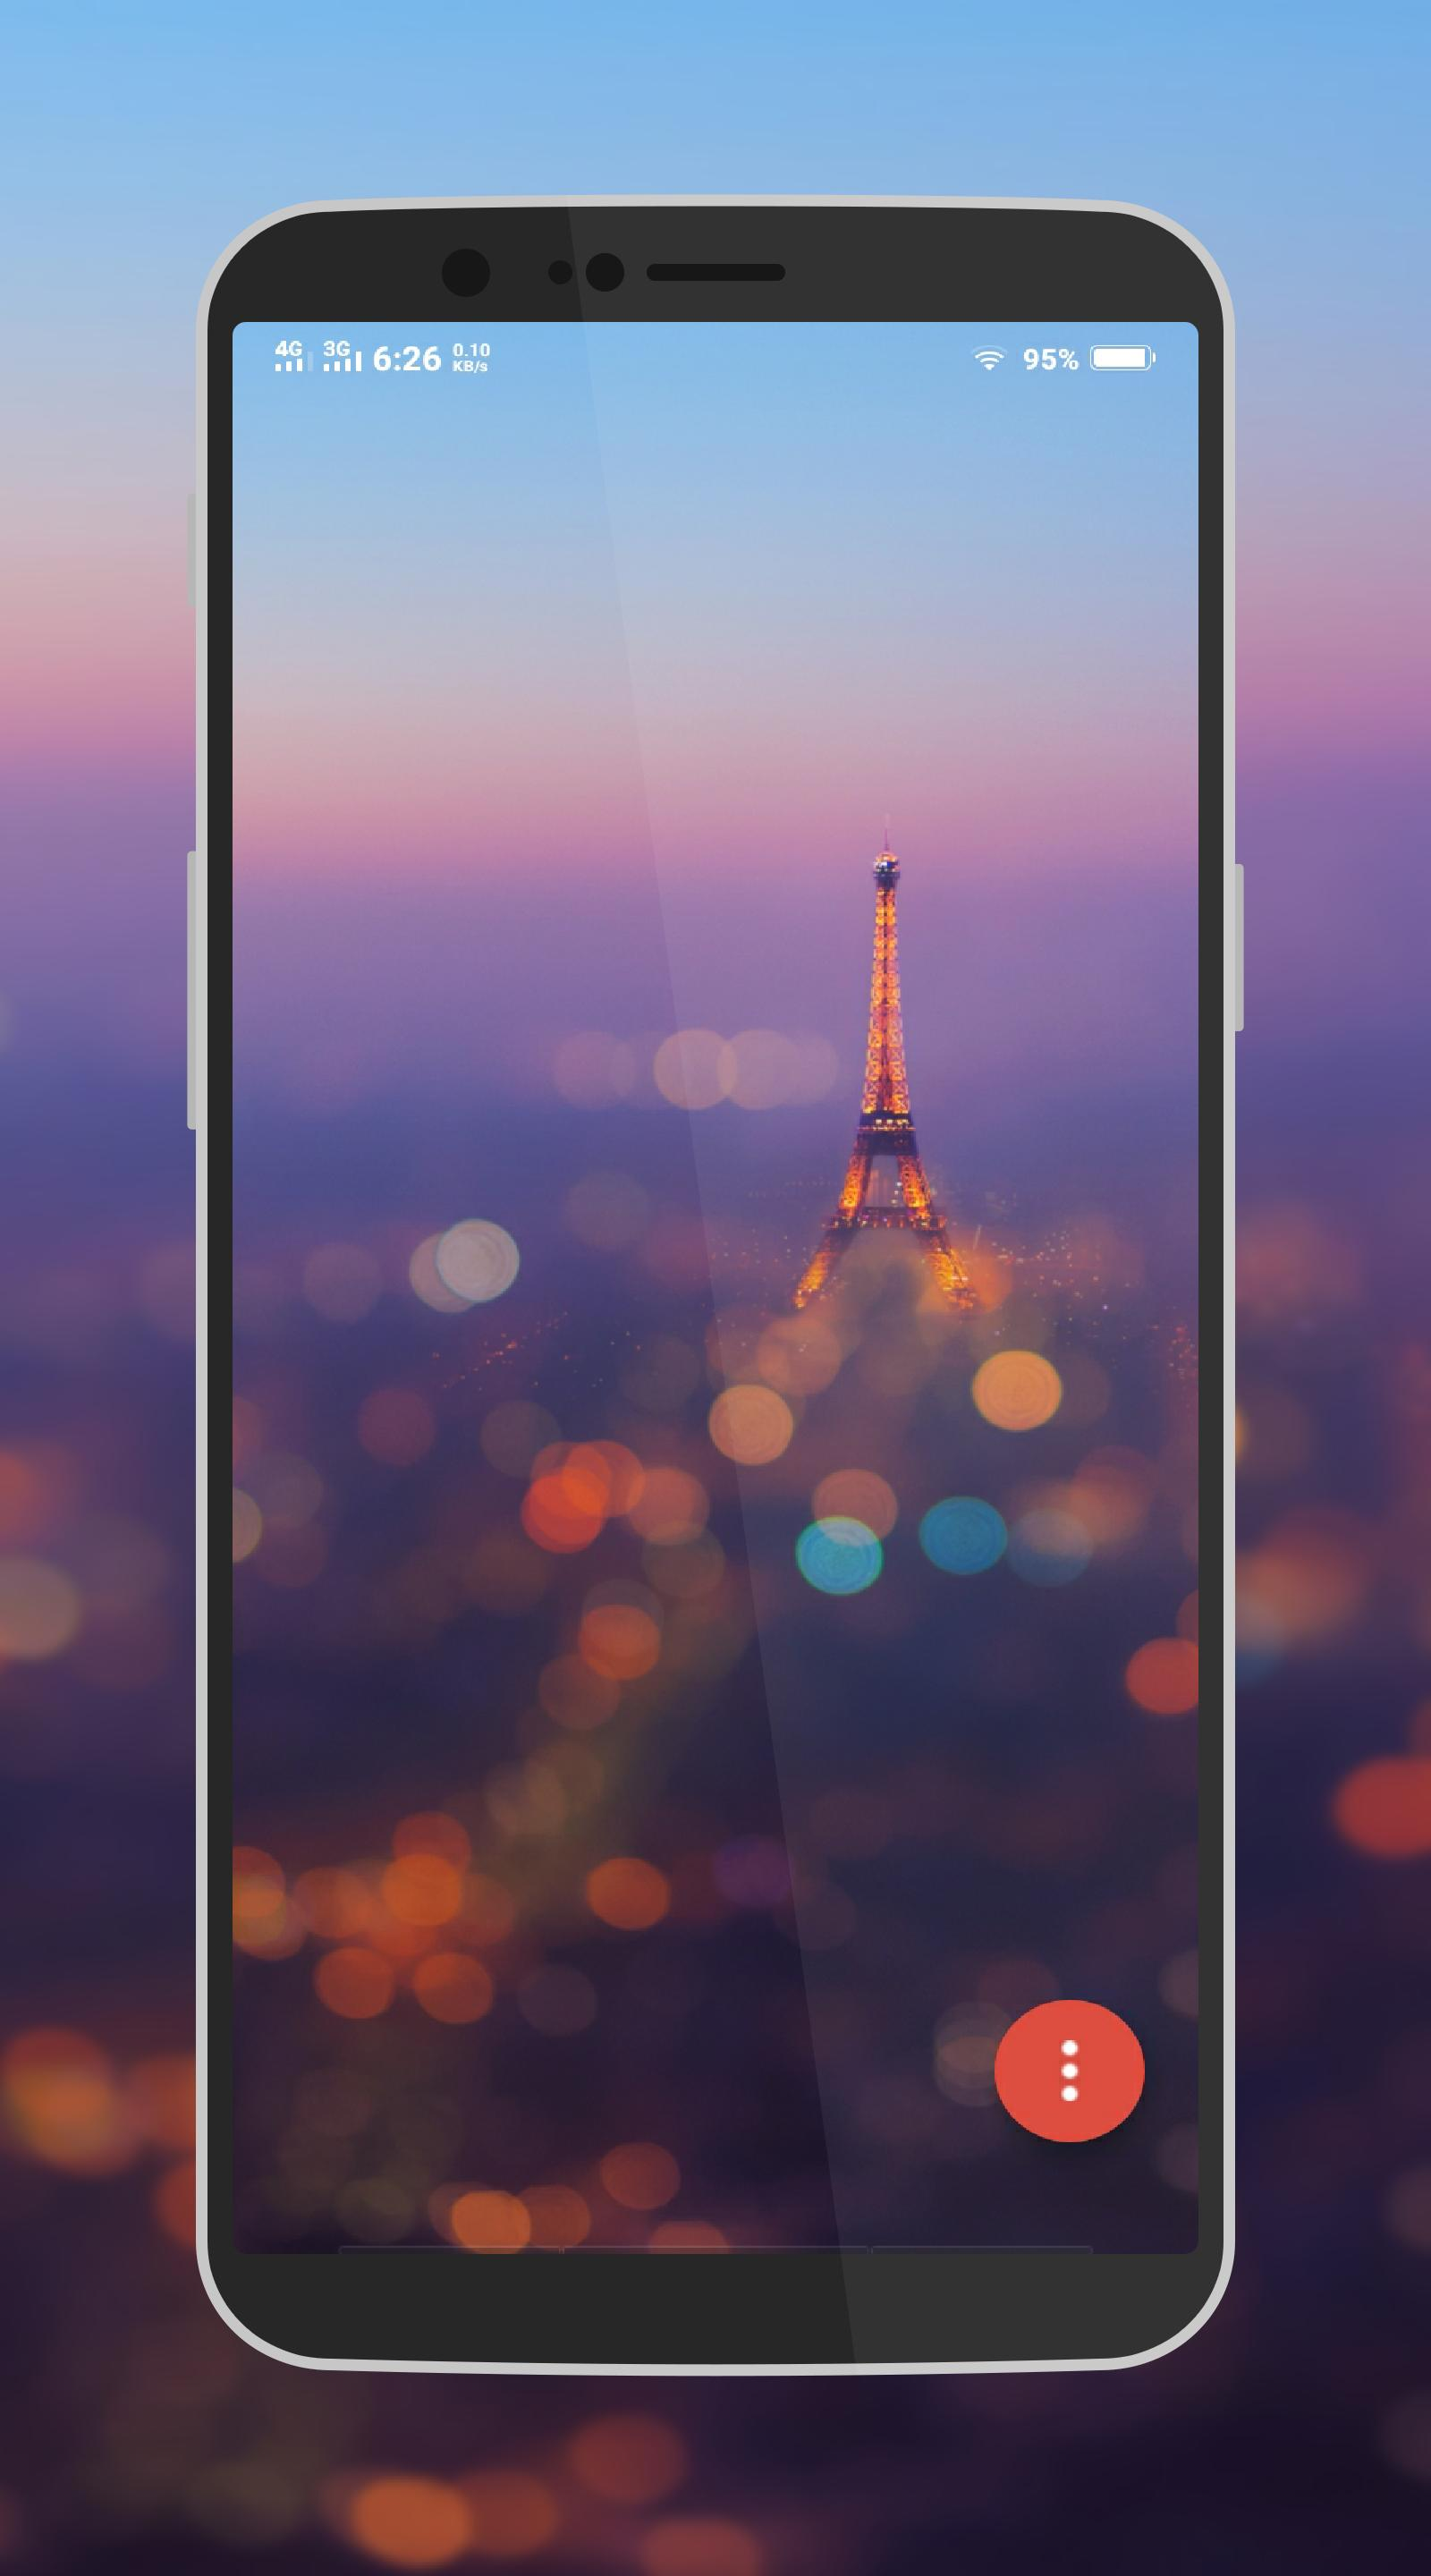 Huawei P20 Pro Tapety I Tła Hd For Android Apk Download